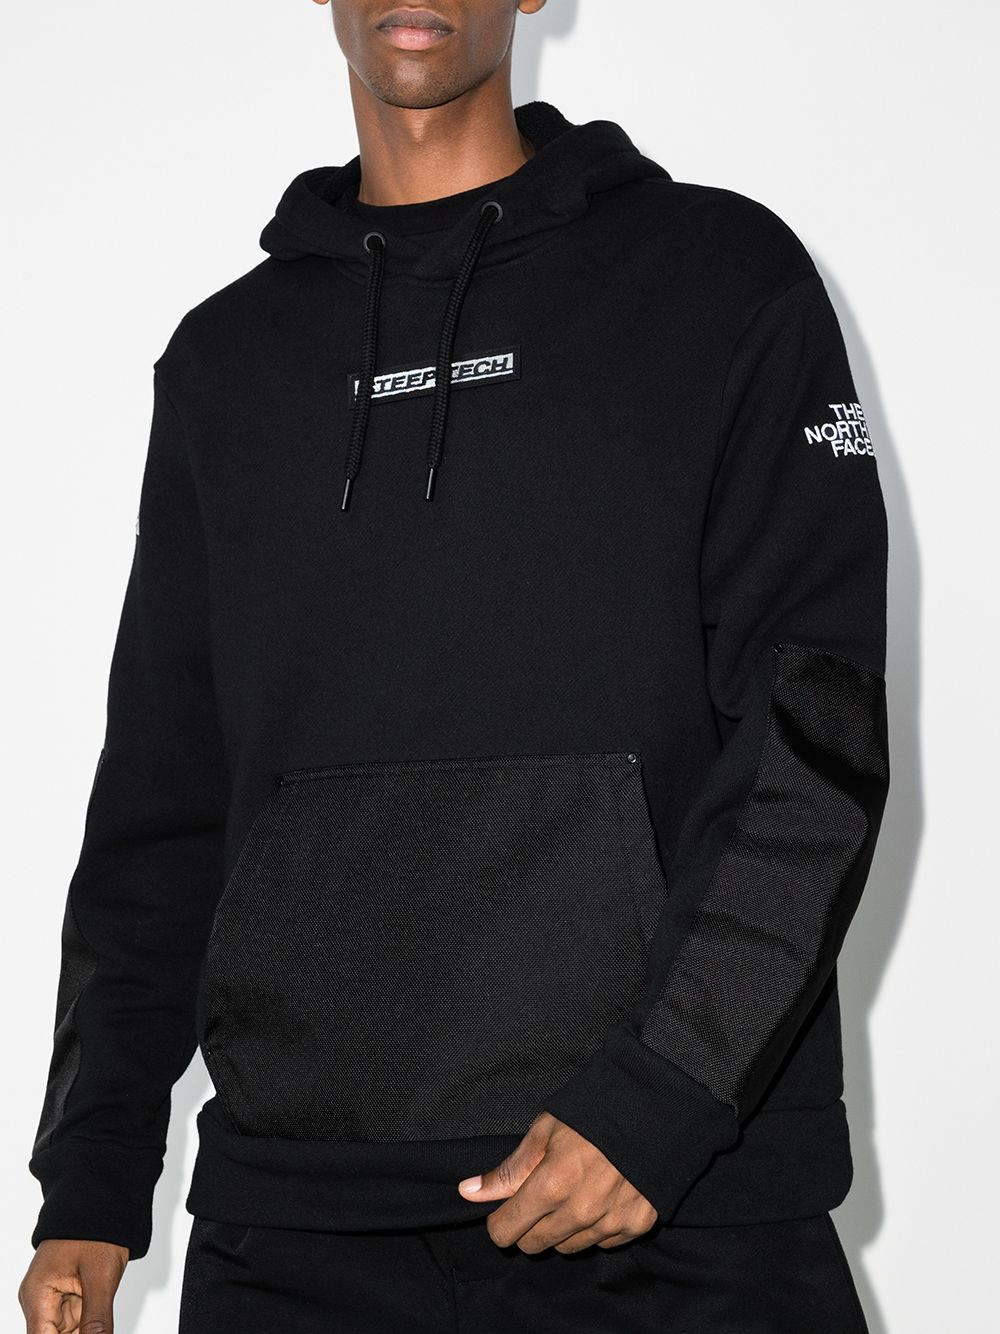 THE NORTH FACE BLACK SERIES GRAPHIC SWEATSHIRT